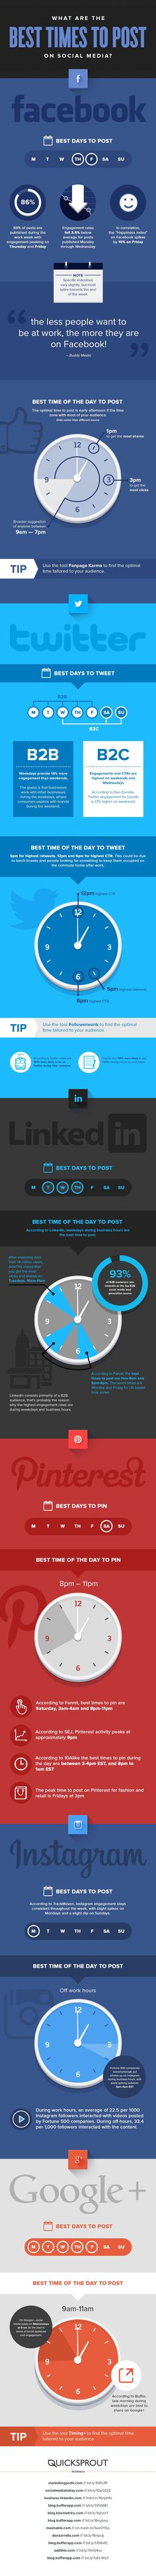 best times and days post social media infographic